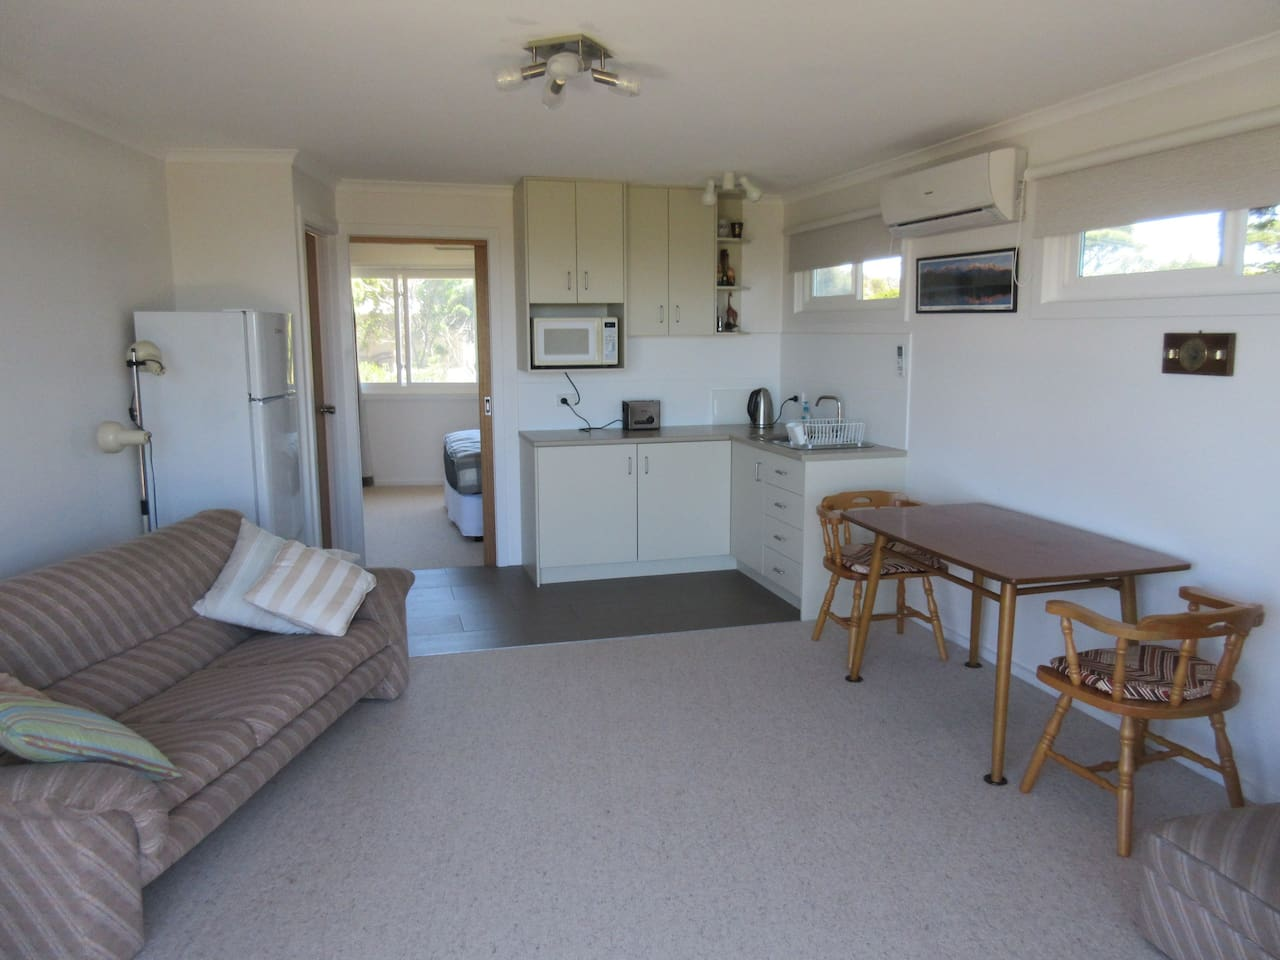 Spacious, bright living room with kitchenette, opening onto balcony with ocean view. Separate bedroom and private bathroom.